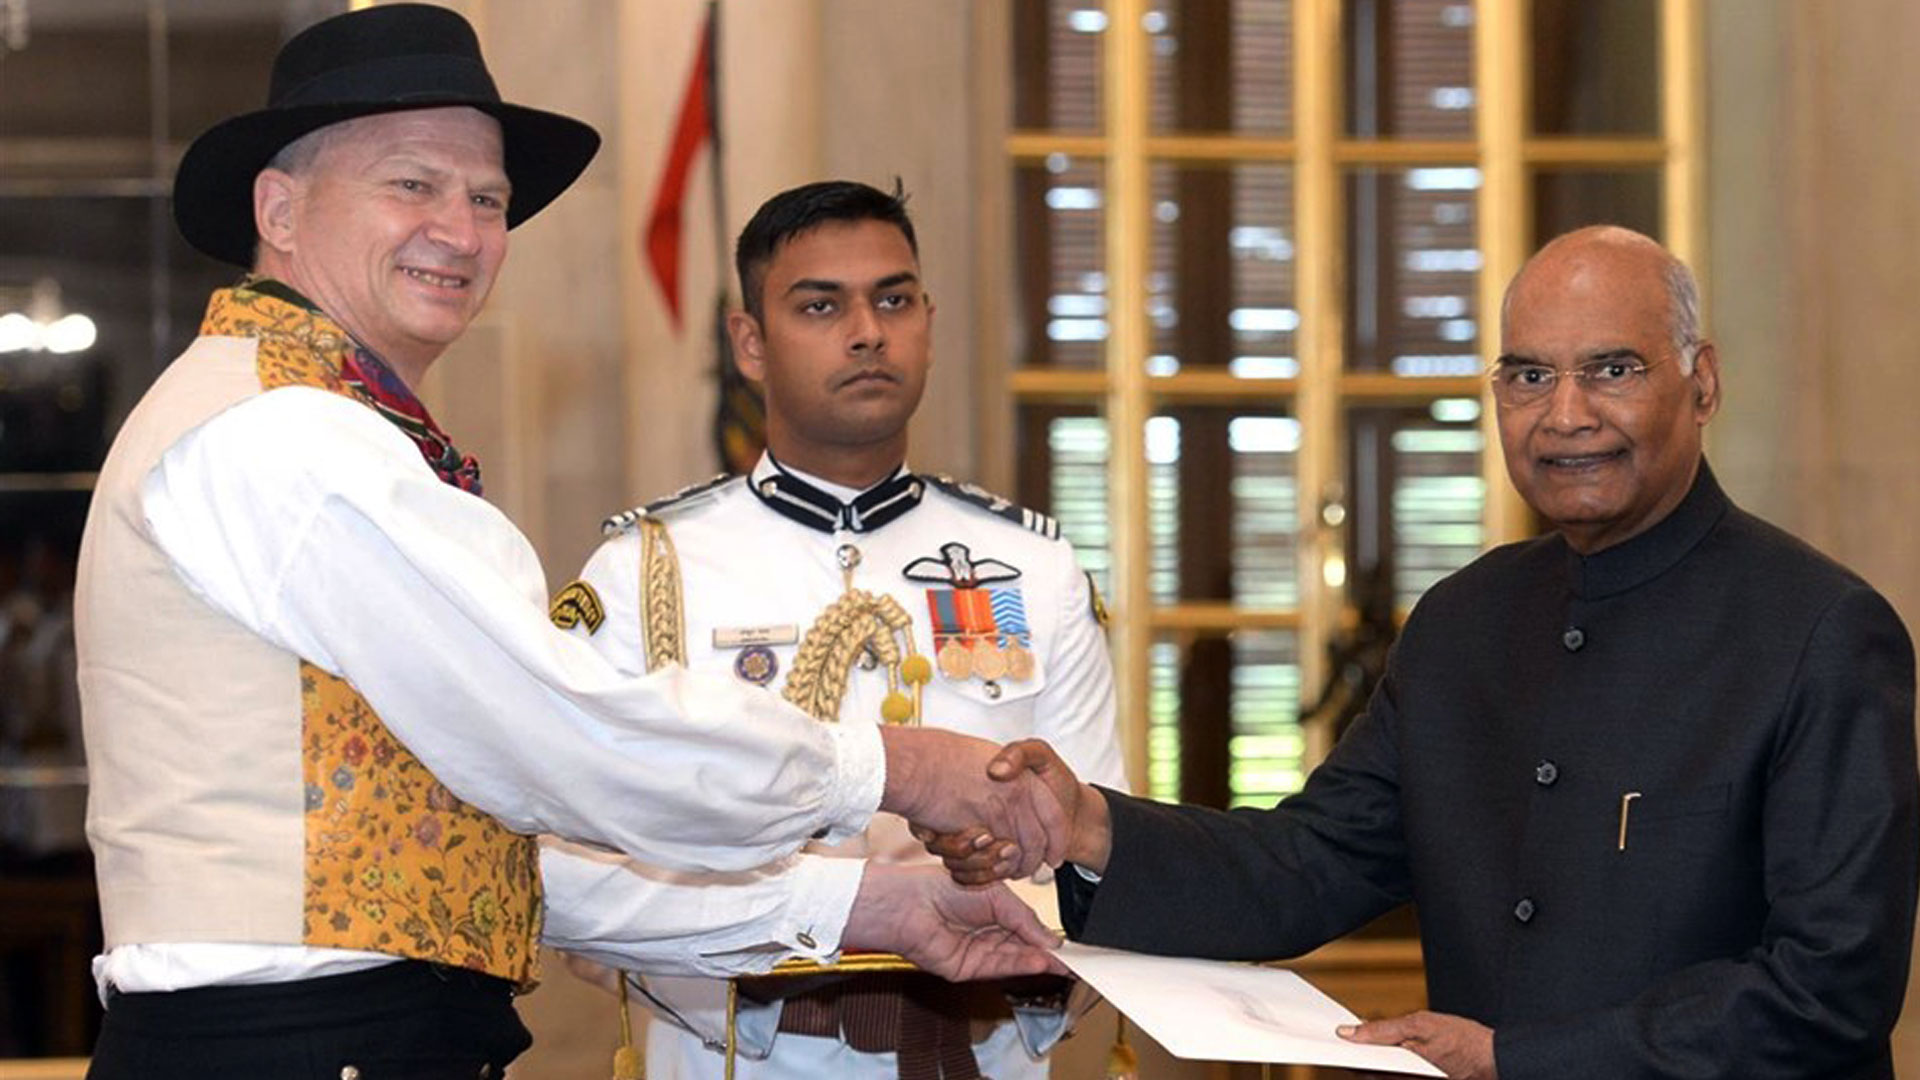 AMBASSADOR PRESENTING CREDENTIALS TO PRESIDENT OF INDIA